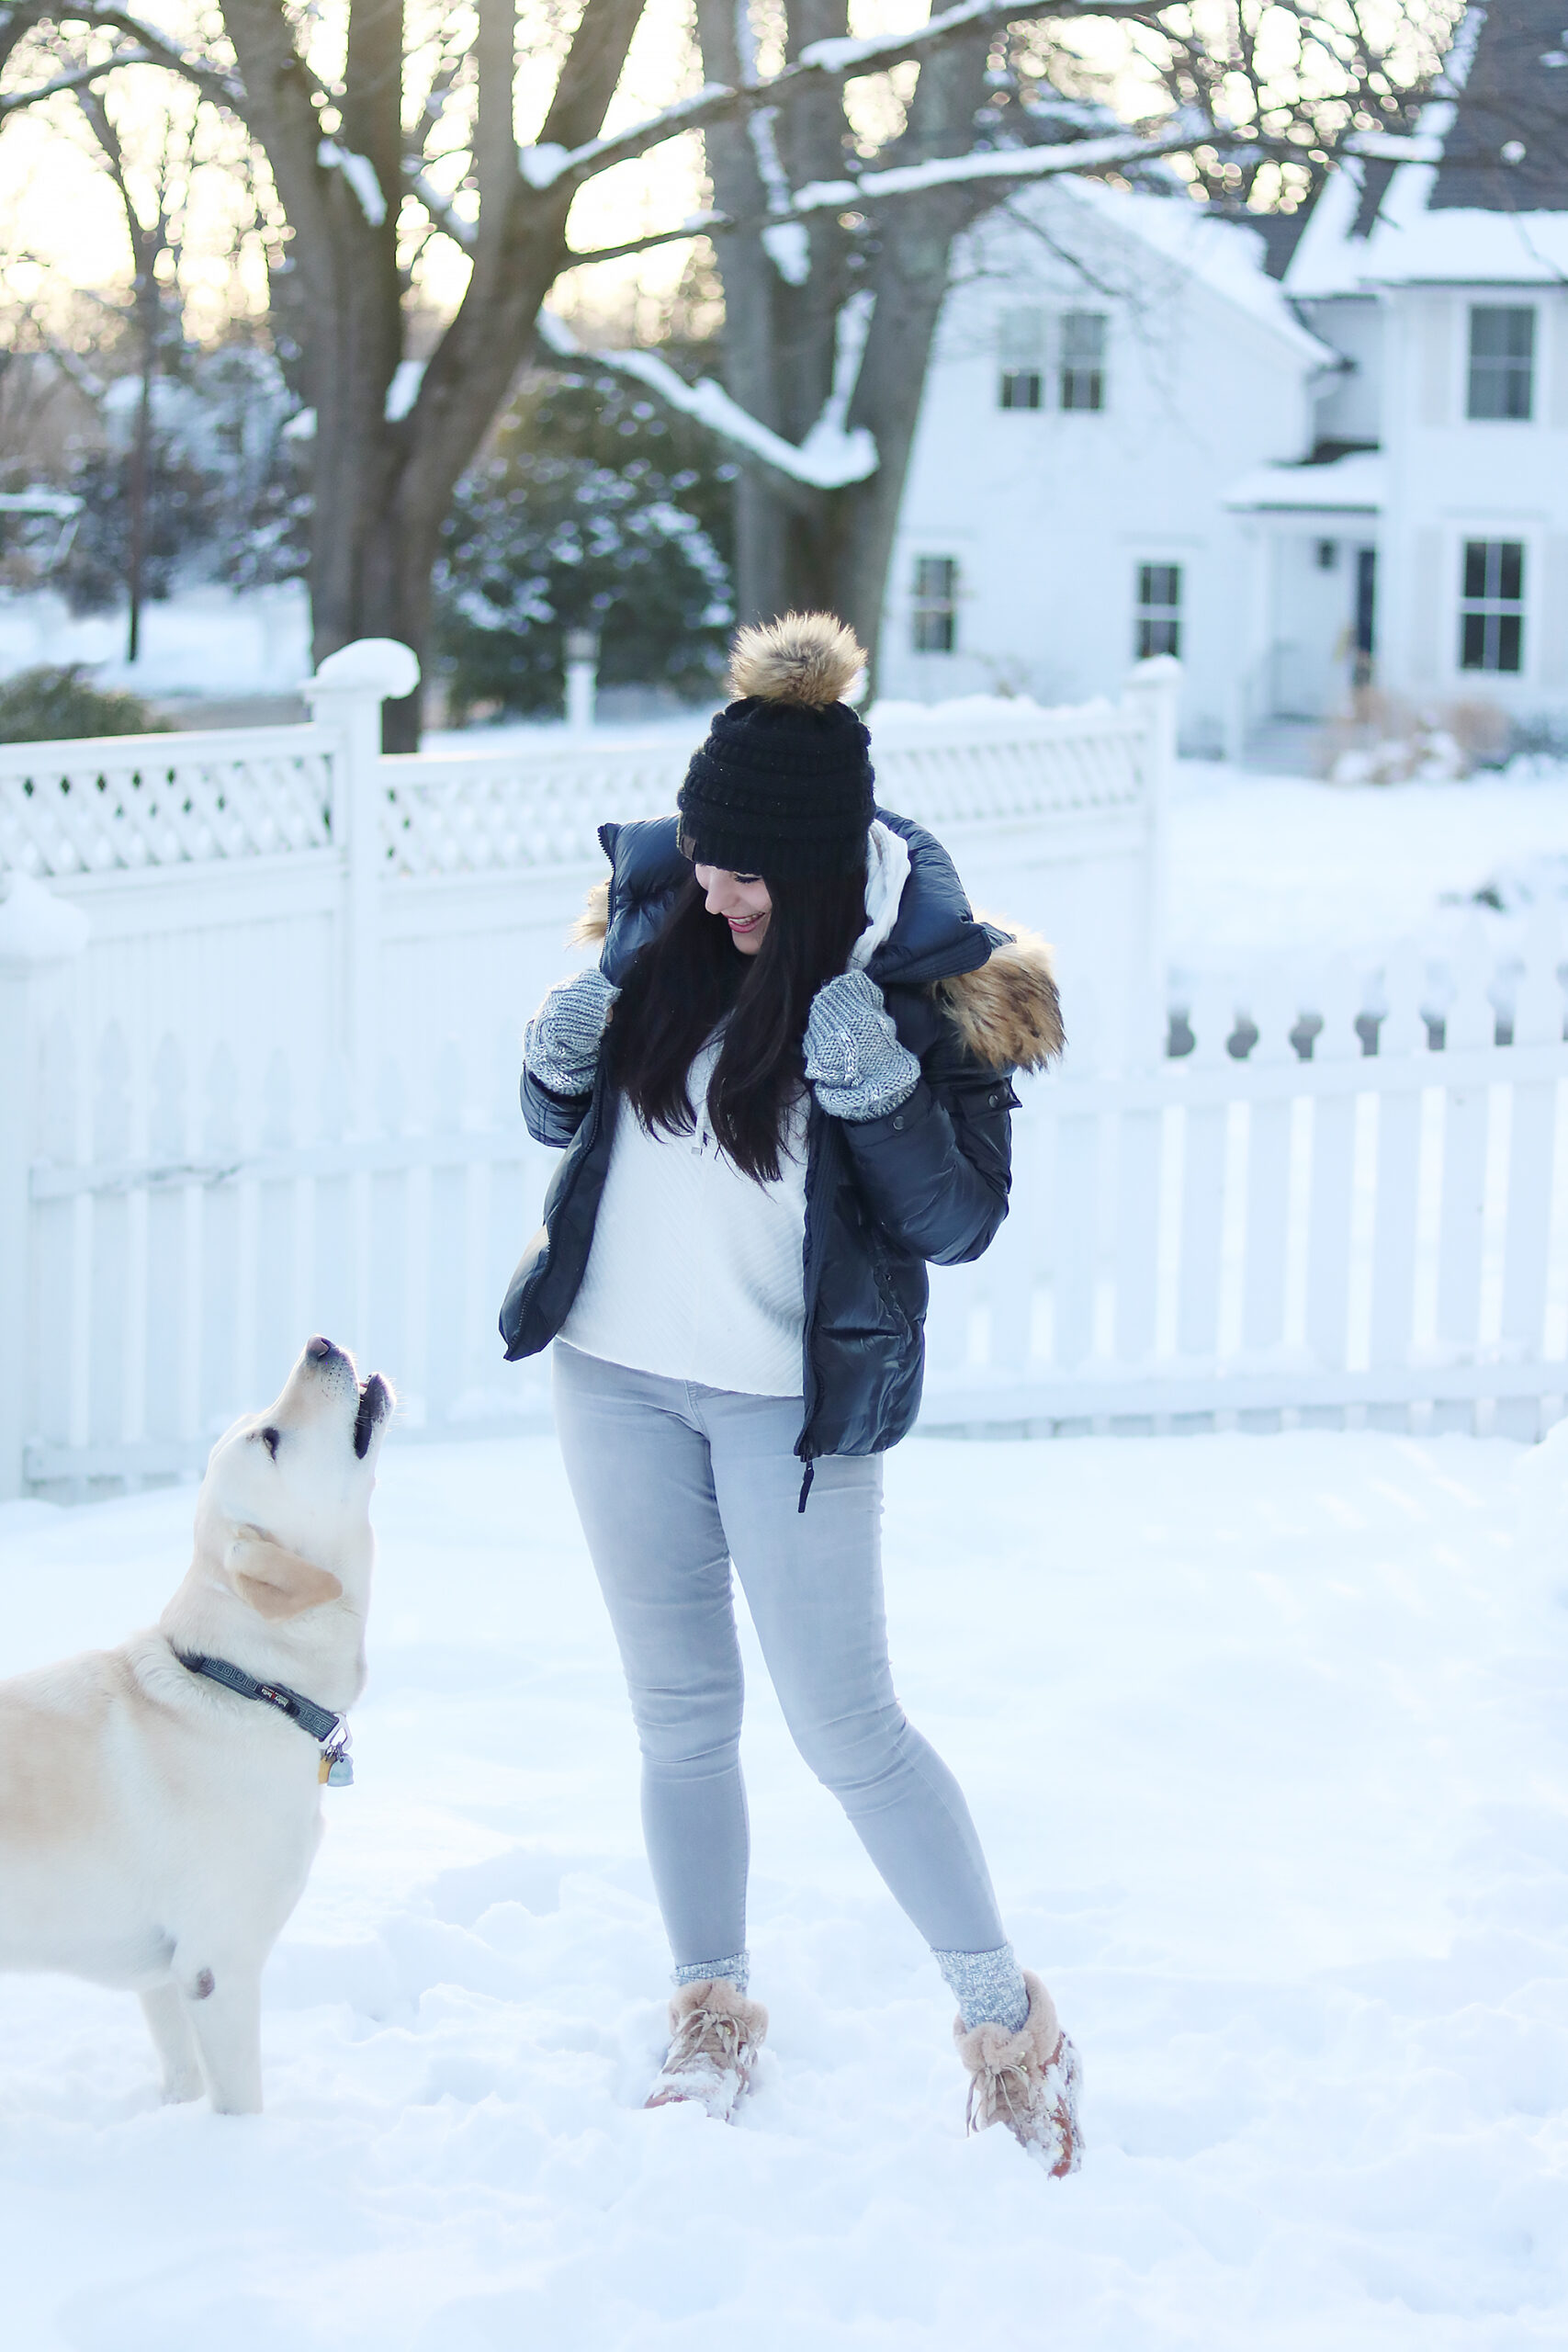 The Best Winter coats and boots sales going on right now to wear right now and stock up for next winter snow season! You don't want to miss! || Darling Darleen Top CT Lifestyle Blogger #wintersales